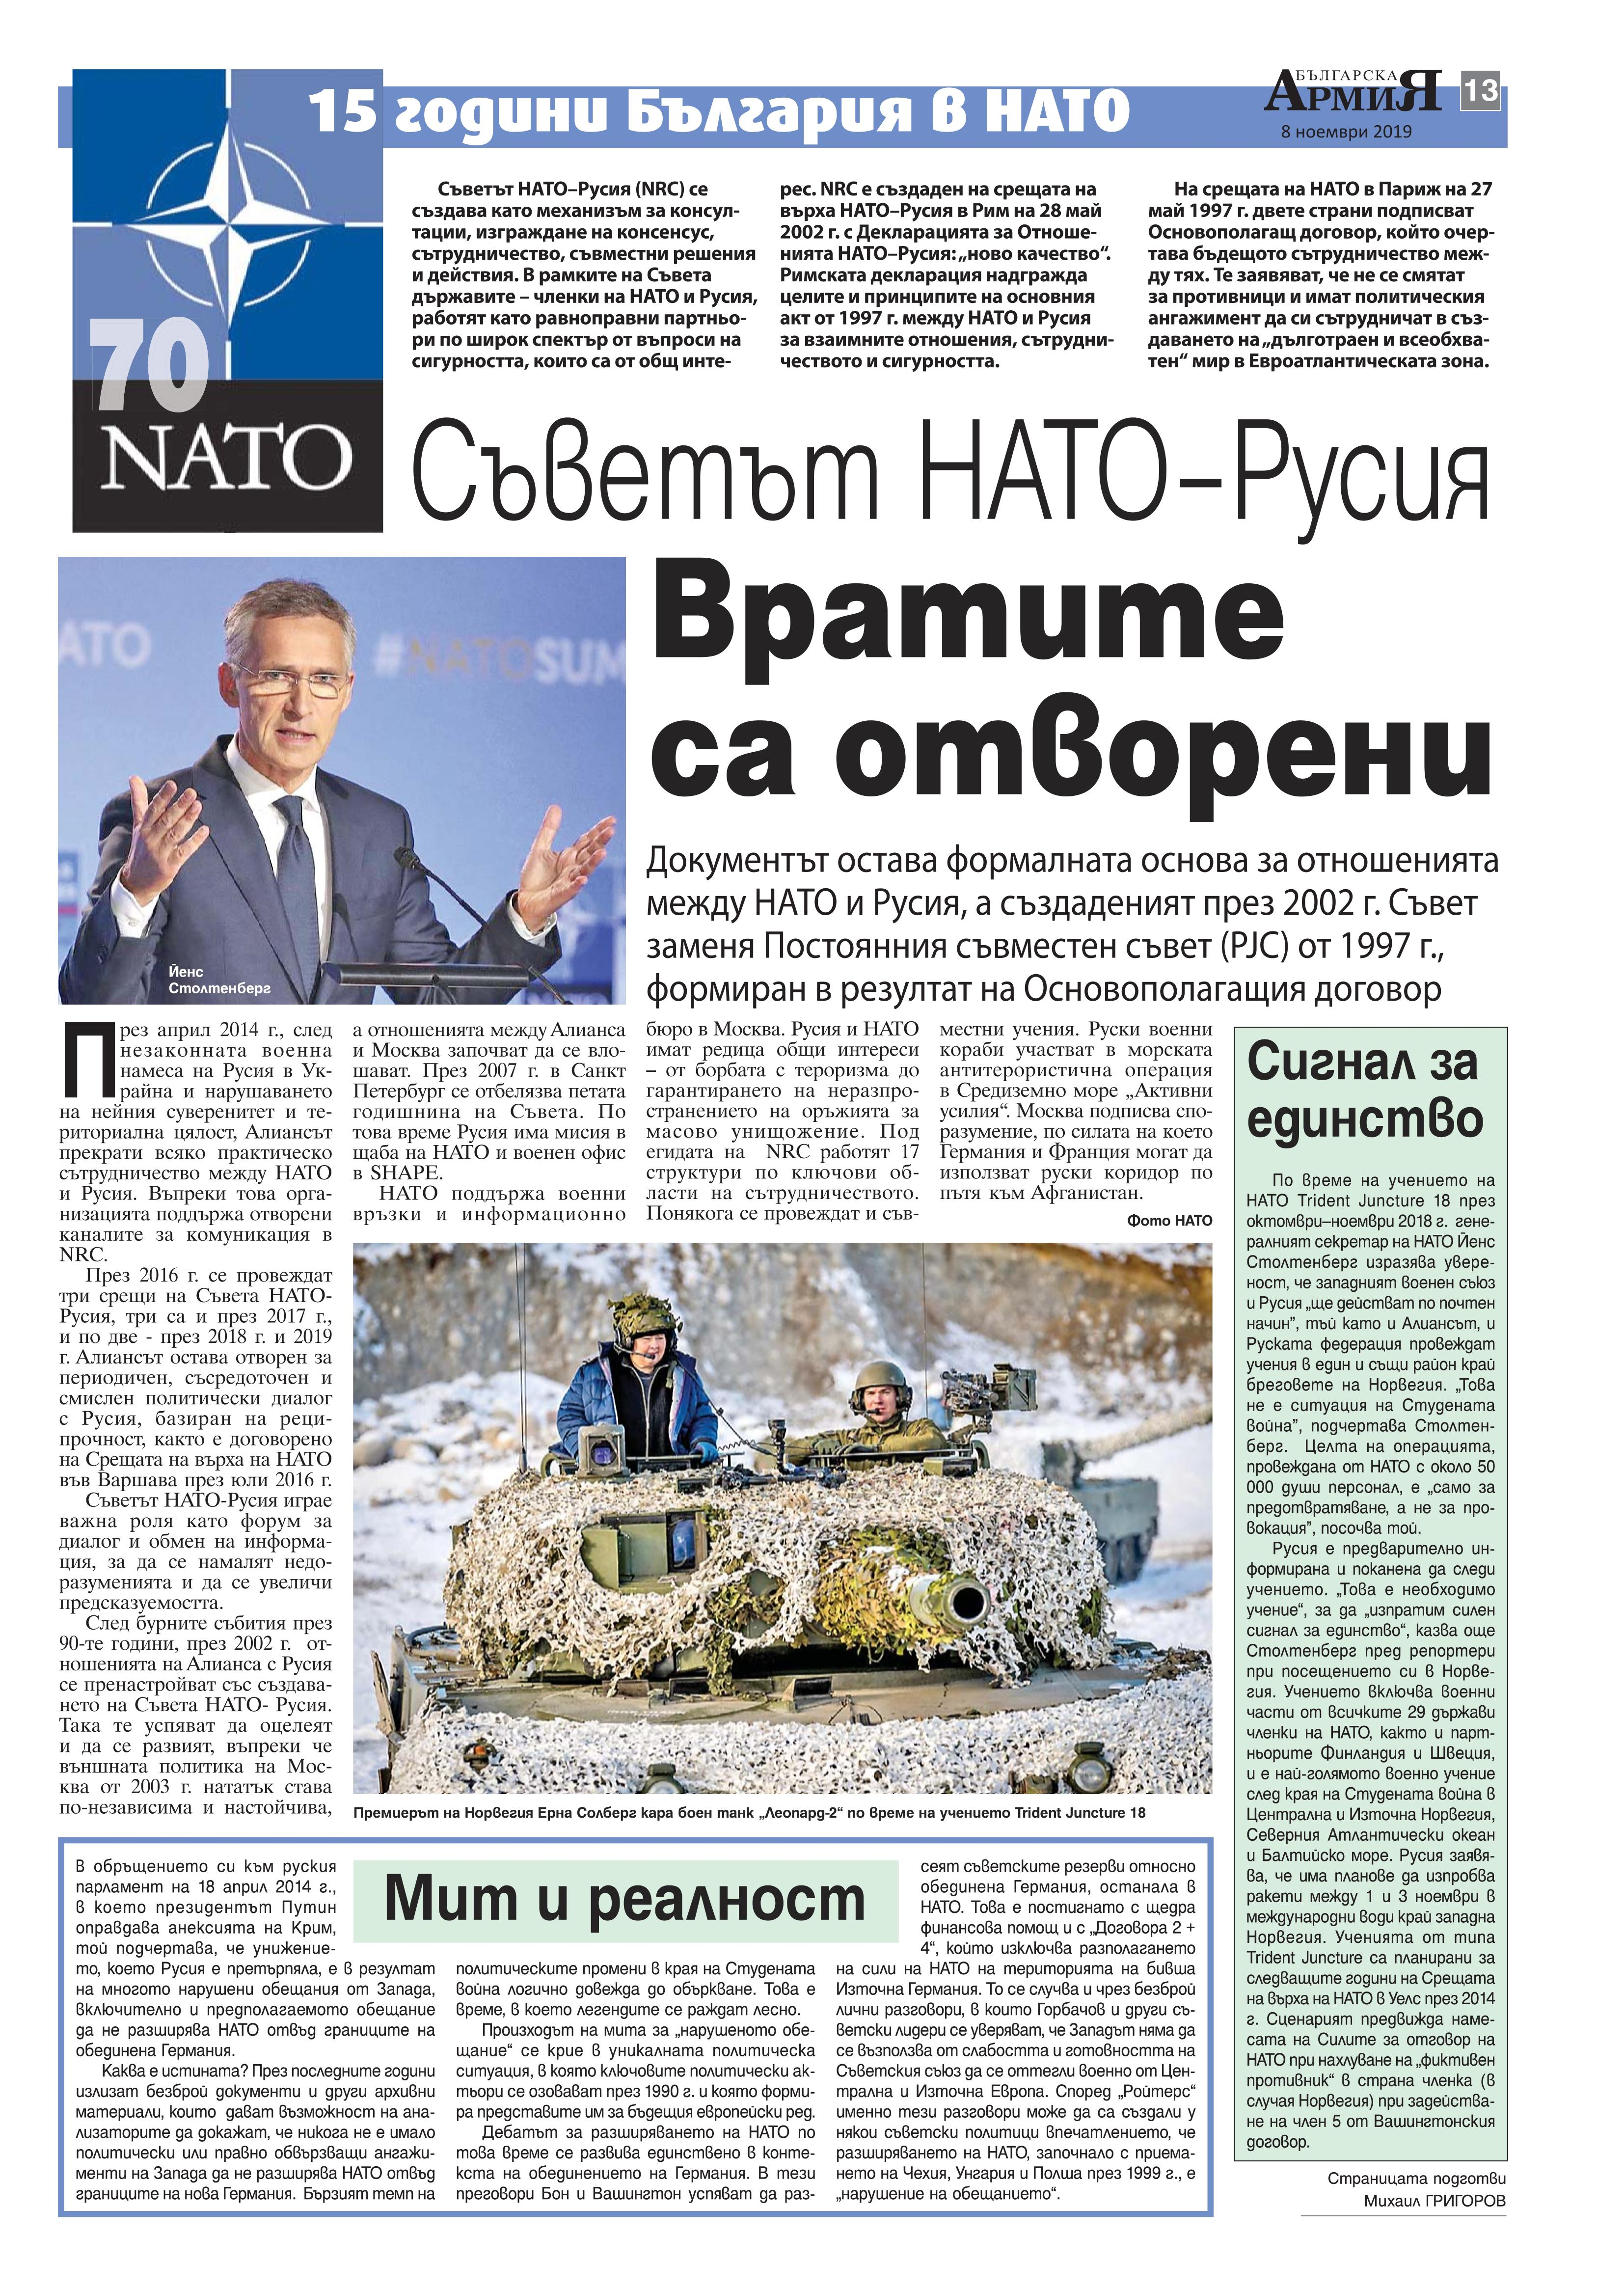 https://www.armymedia.bg/wp-content/uploads/2015/06/13.page1_-115.jpg